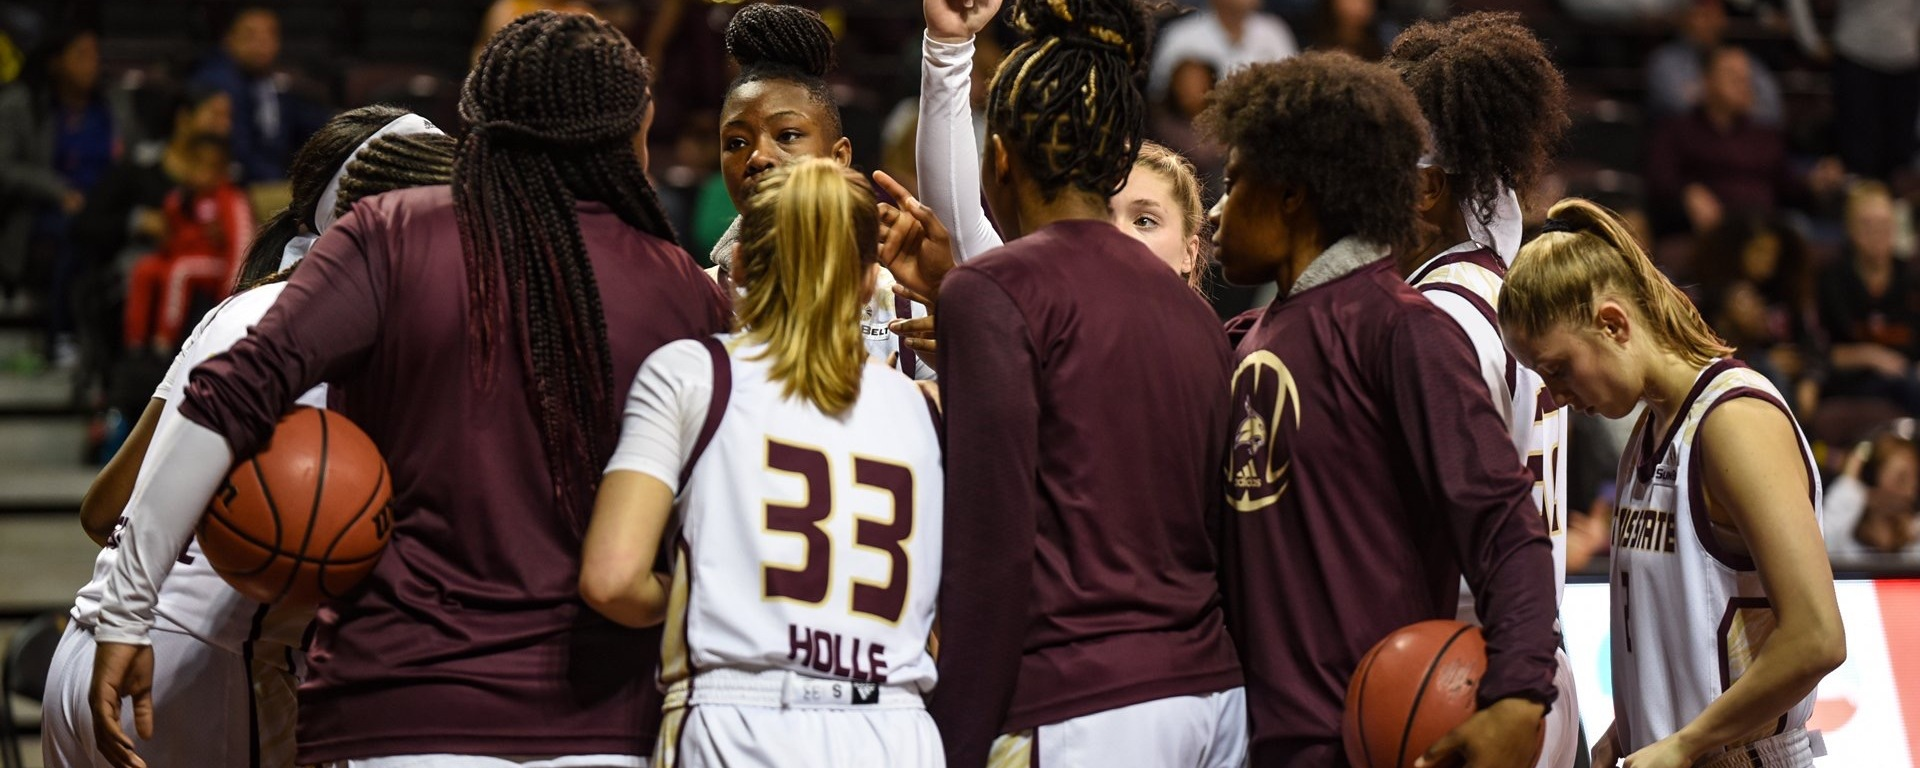 The Texas State women's basketball team in a huddle with one fist raised in the air.